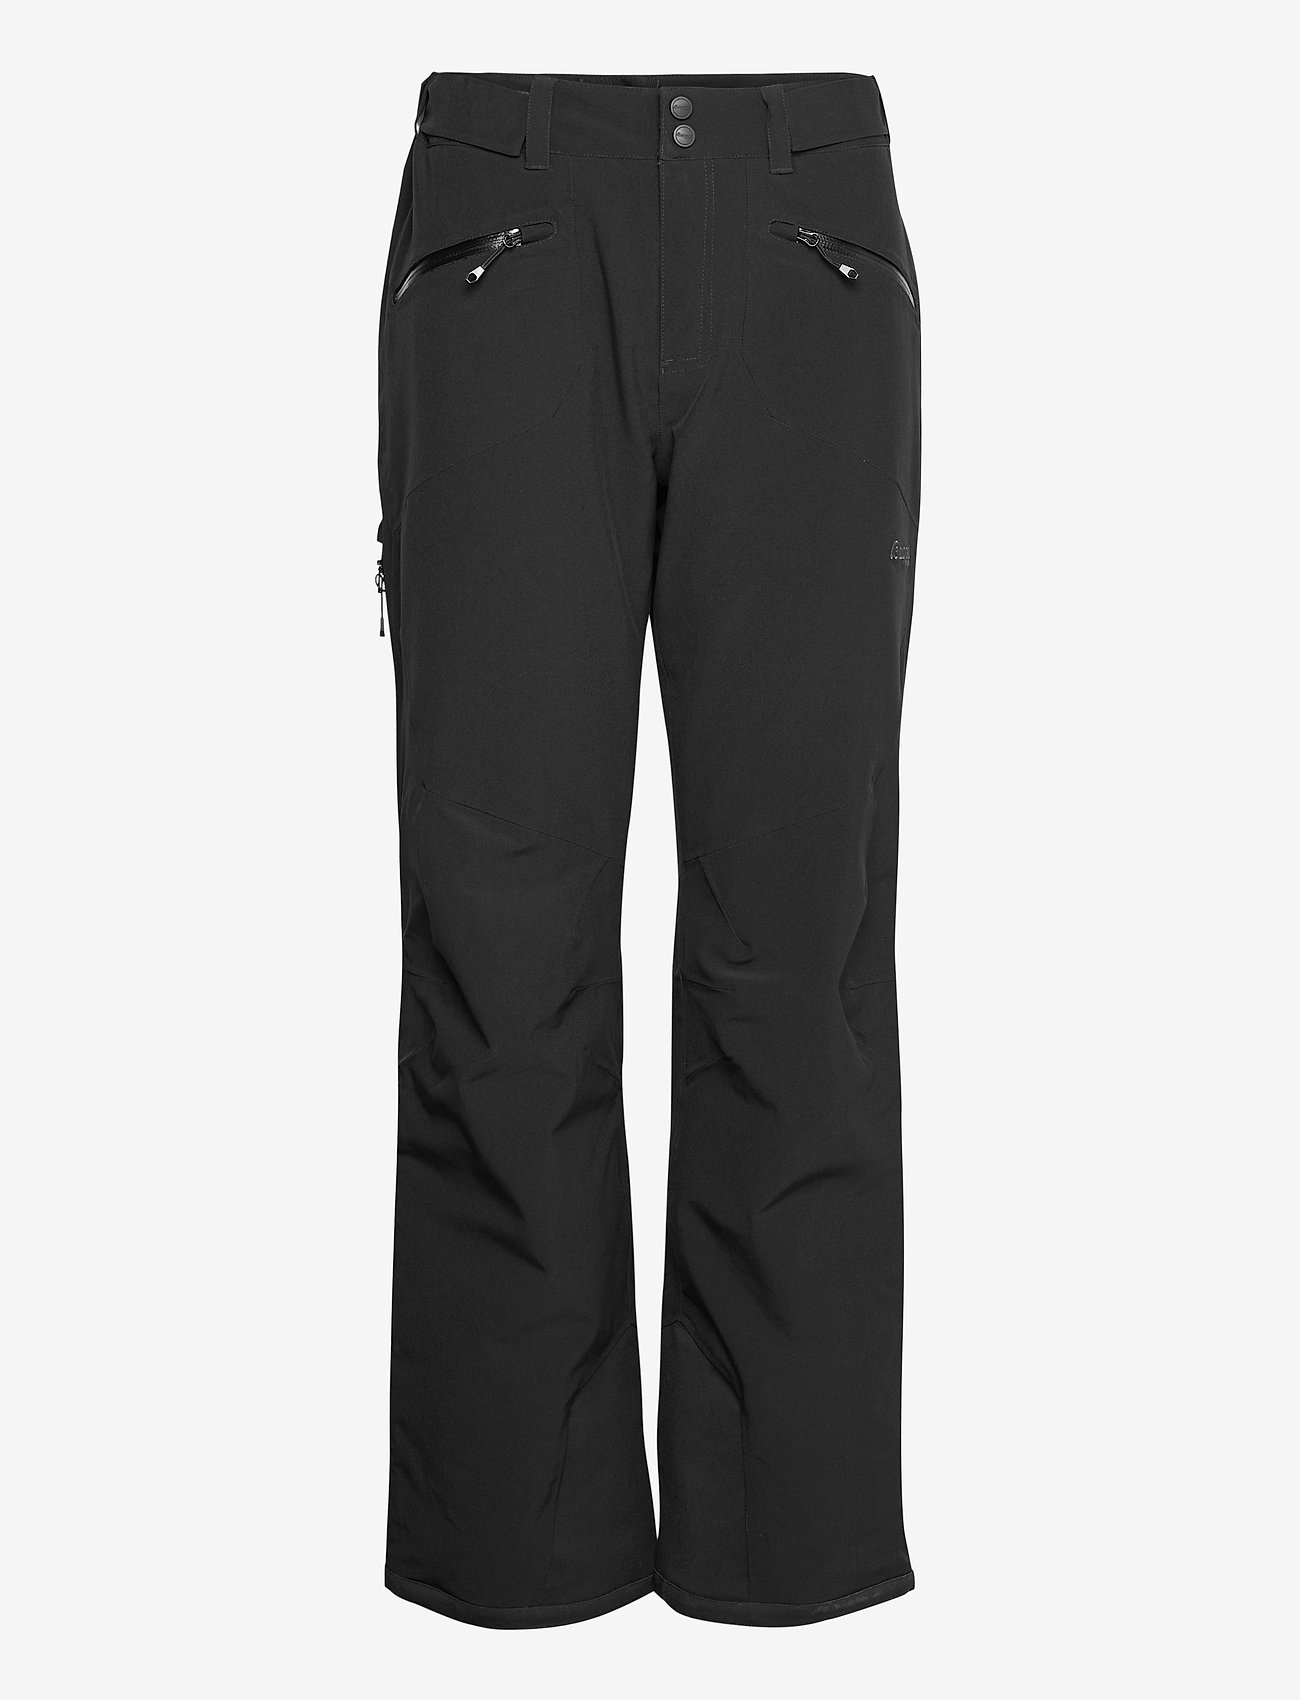 Bergans - Oppdal Insulated Lady Pnt - skibroeken - black / solid charcoal - 0